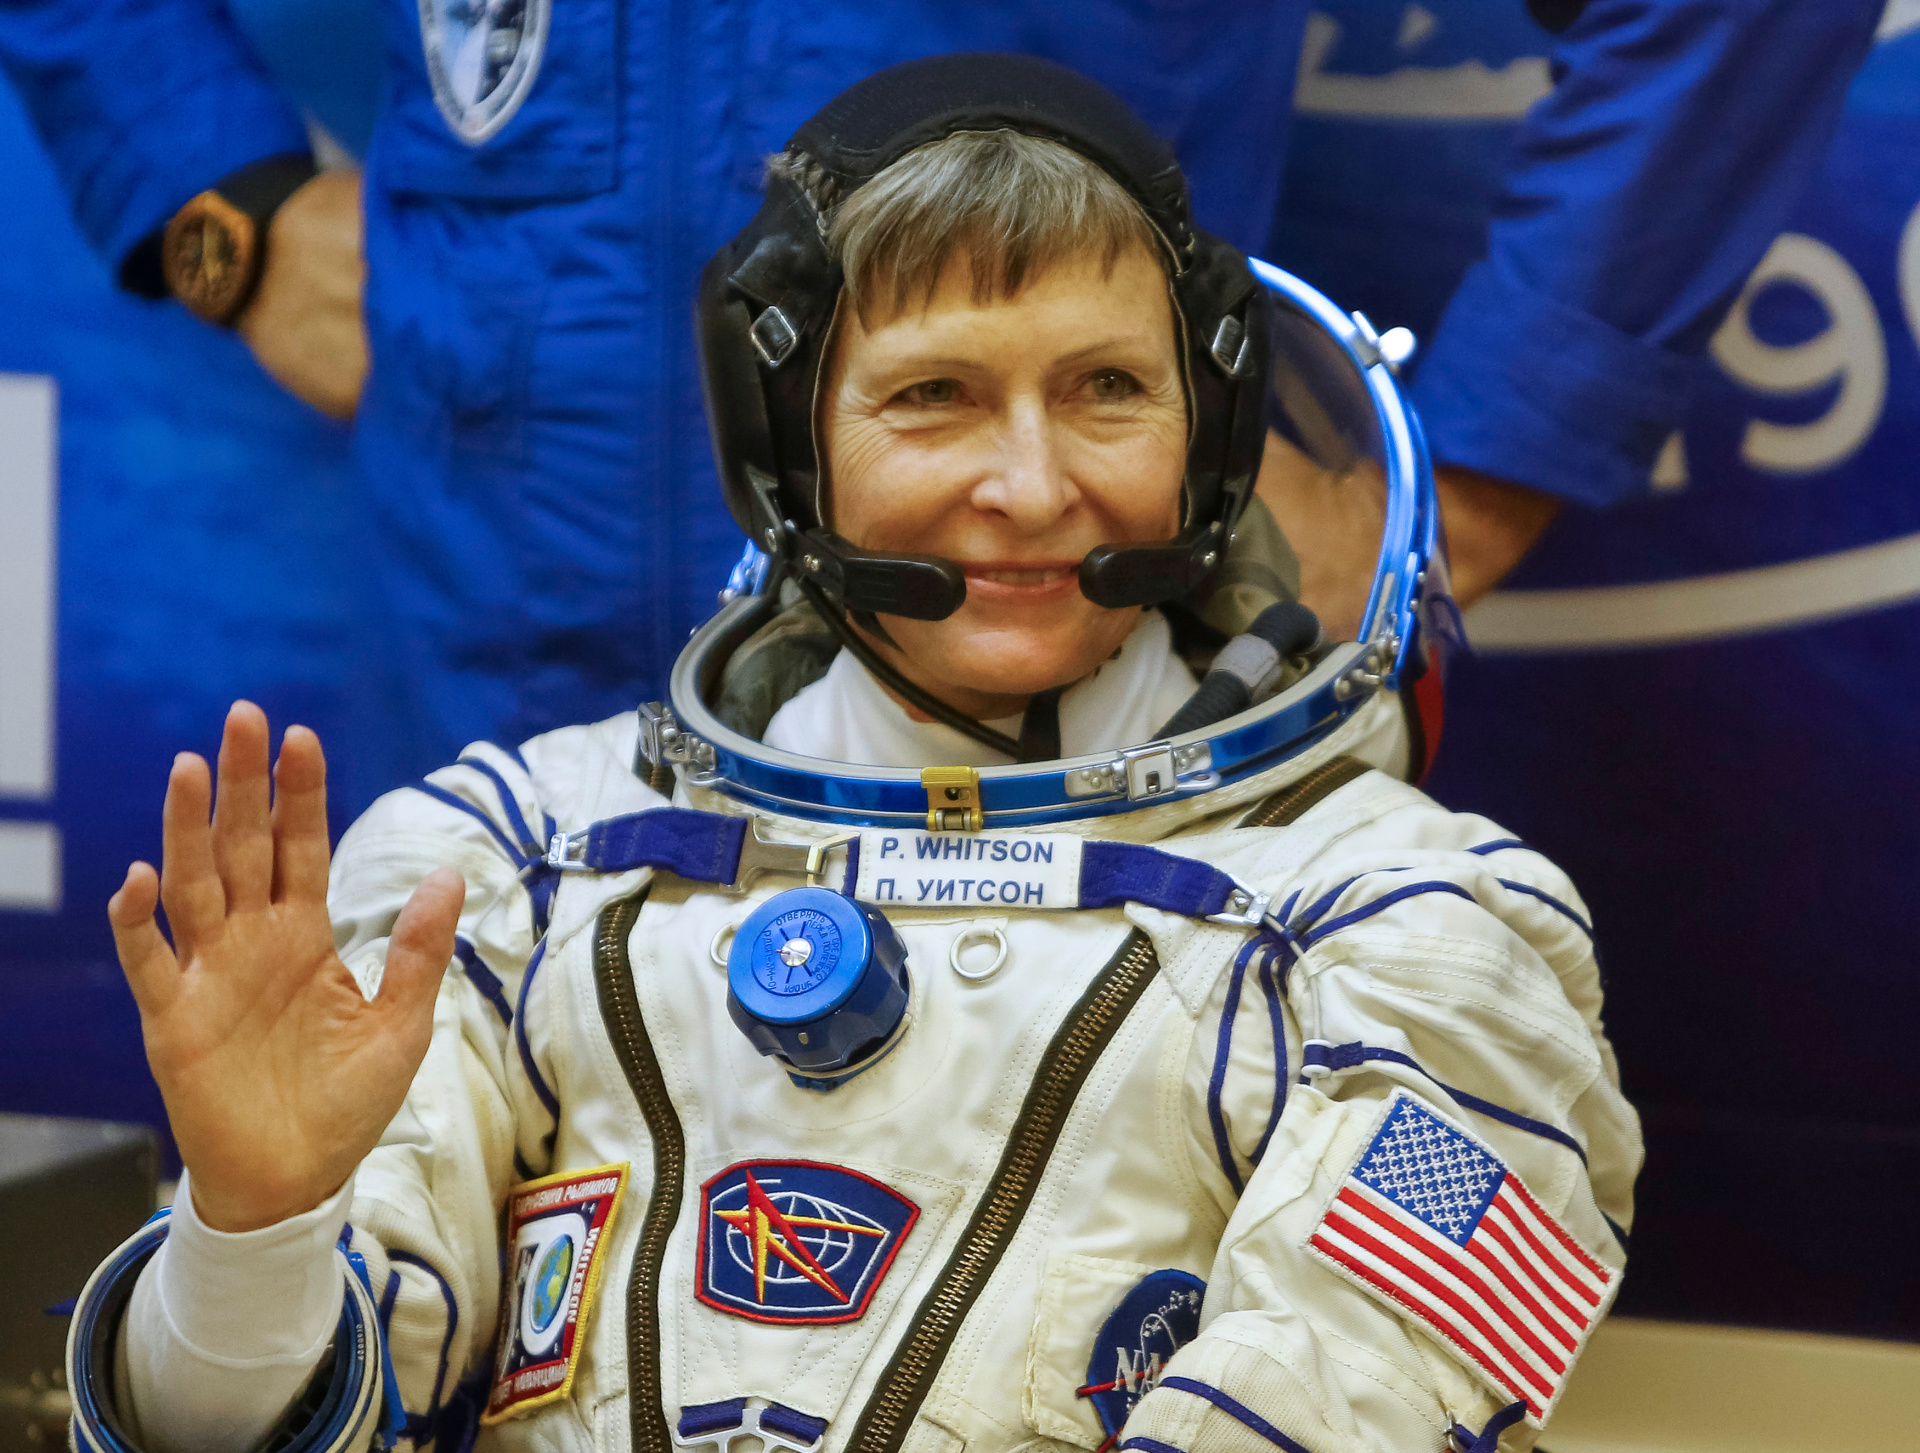 56-Year-Old Astronaut Becomes Oldest Woman In Space